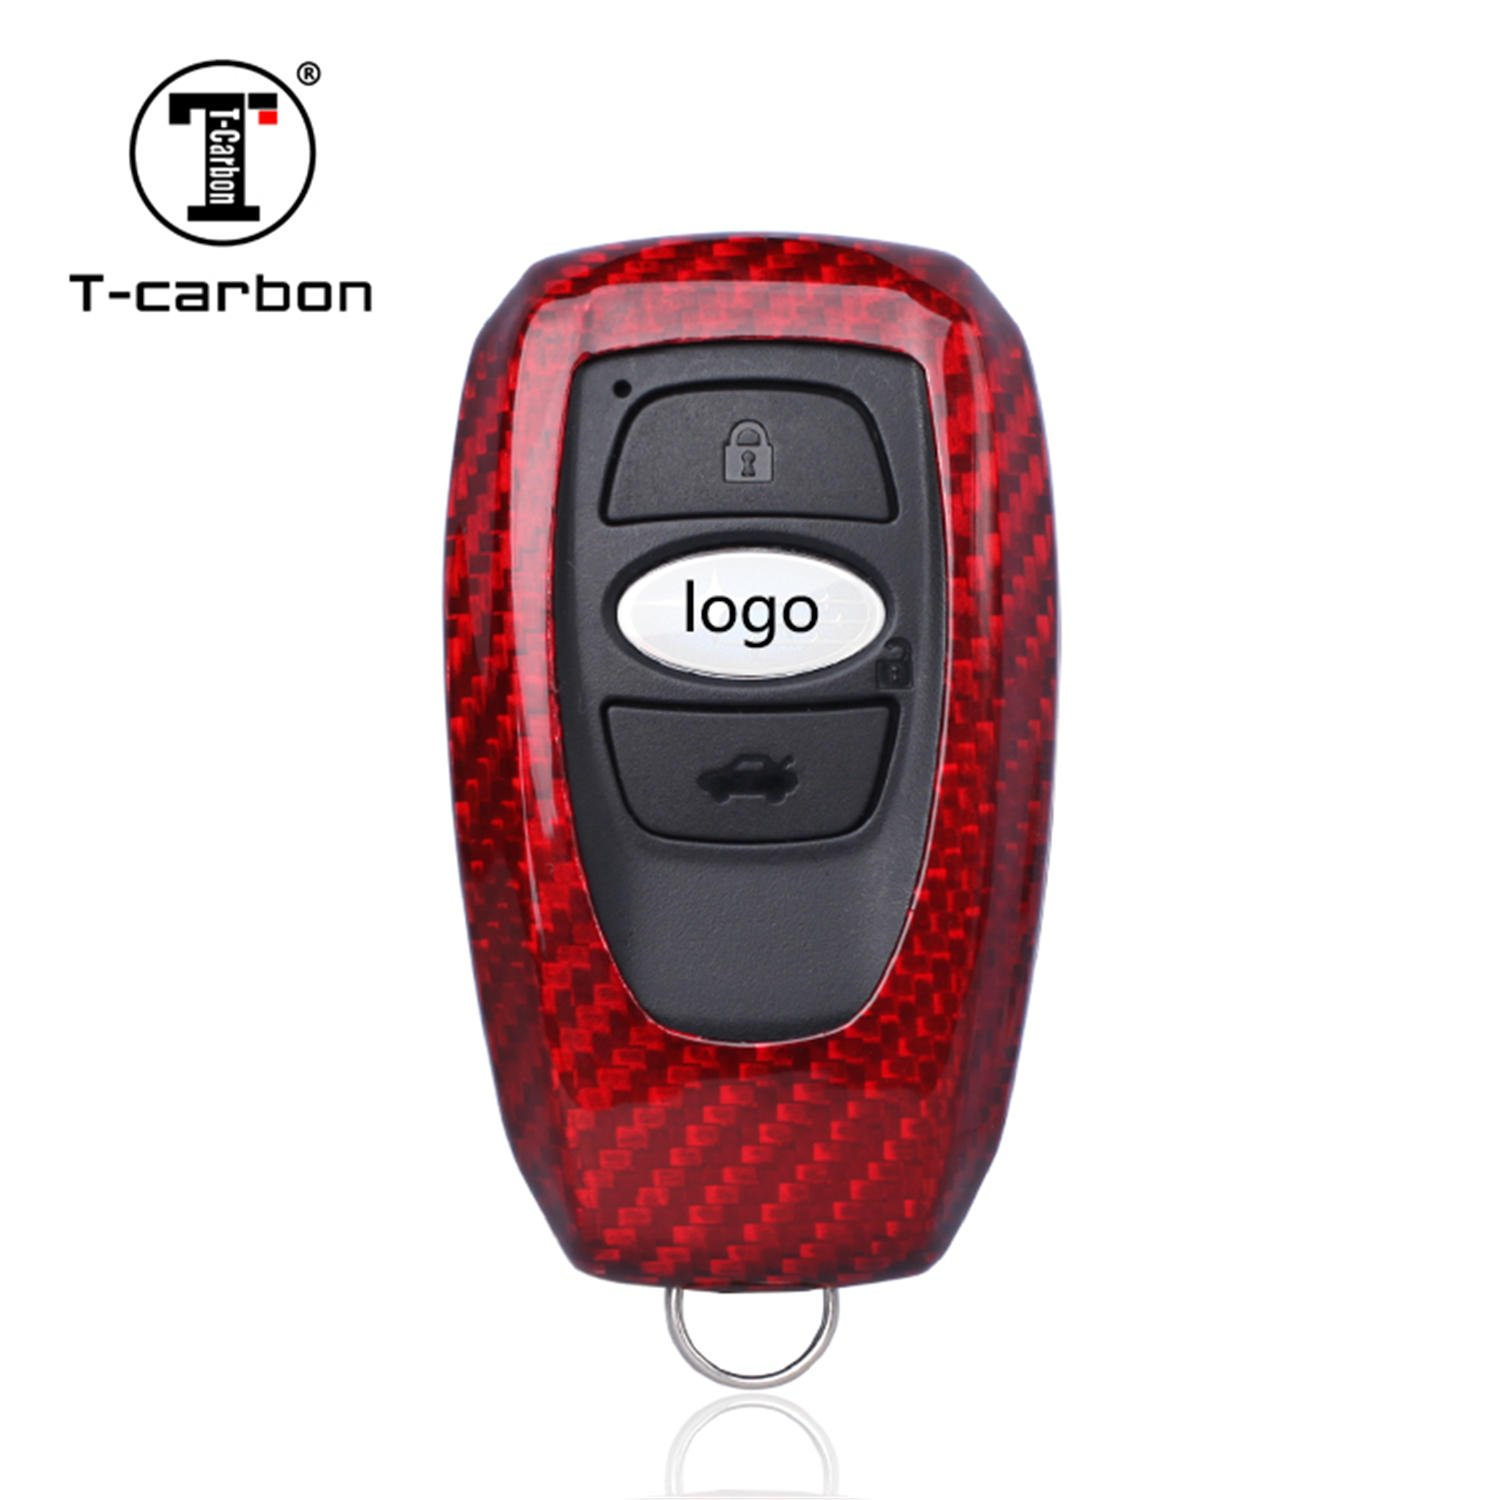 Carbon Fiber Key Fob Cover For Subaru Key Fob Remote Key, Fits Subaru Outback Forester XV Legacy Levorg Smart Keyless Start Stop Engine Car Key, Light Weight Glossy Key Fob Protection Case - Red